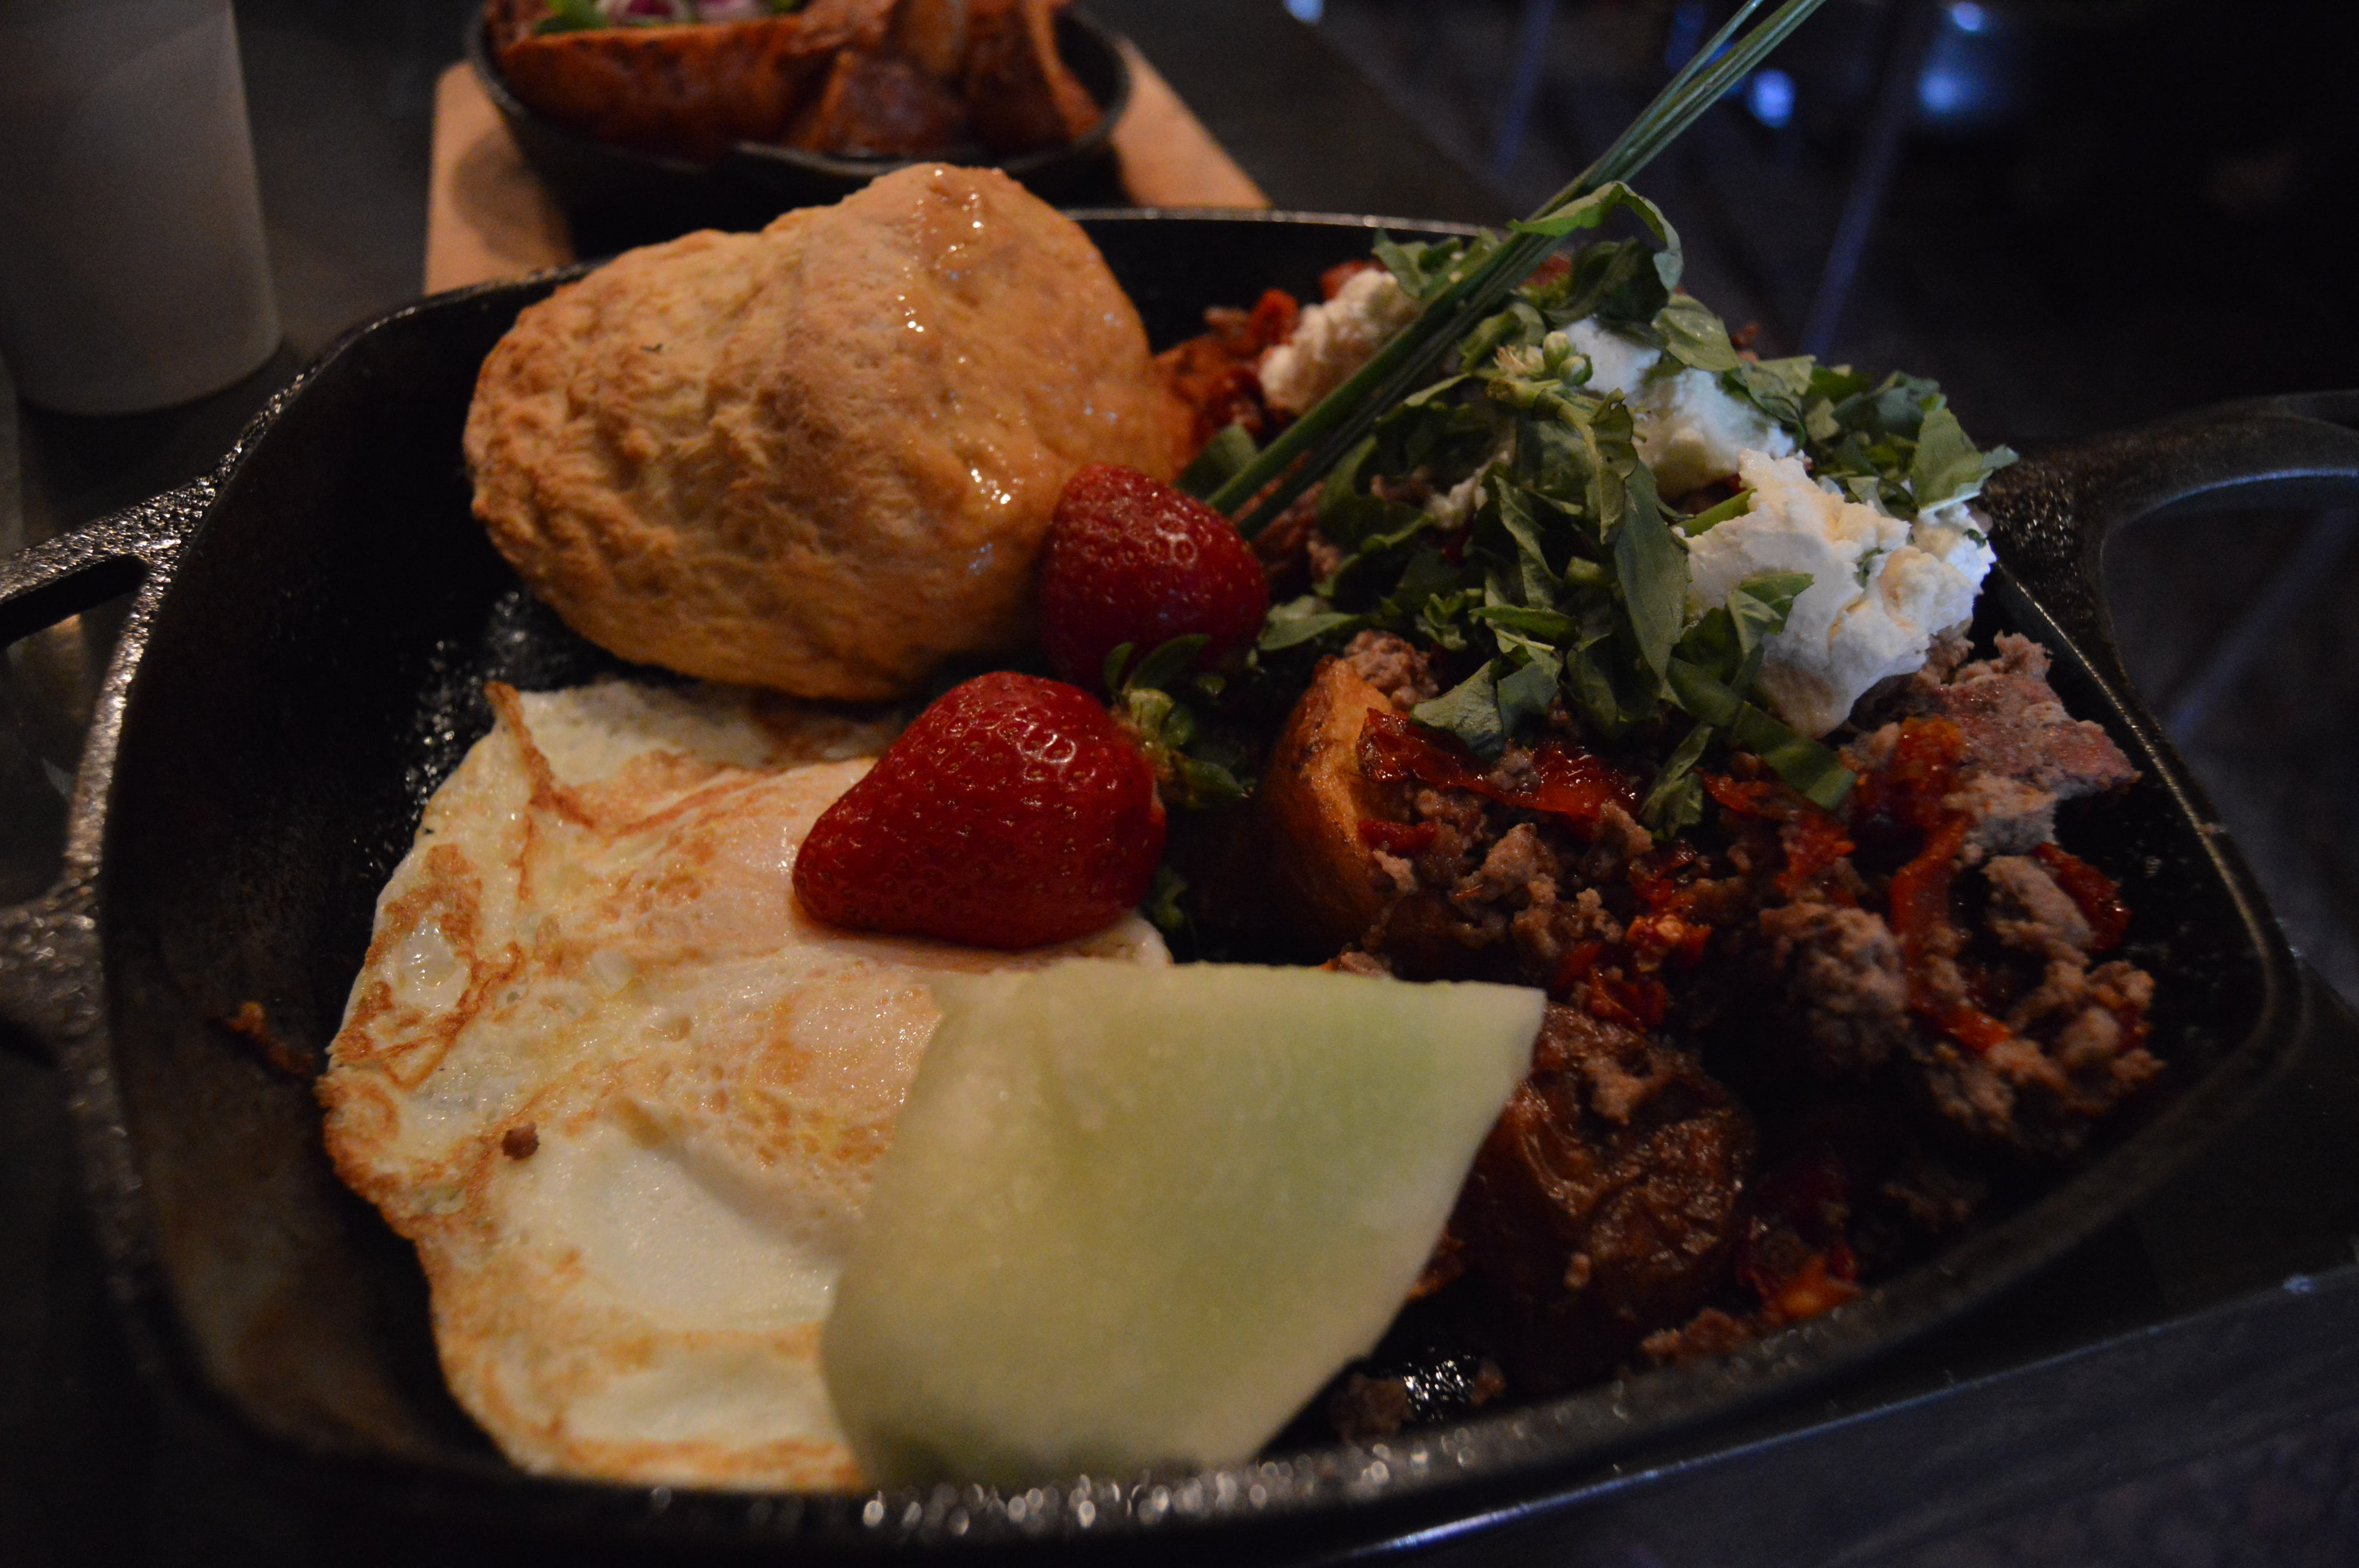 The Brunch at Tractor Room | SipSavorSeeSD